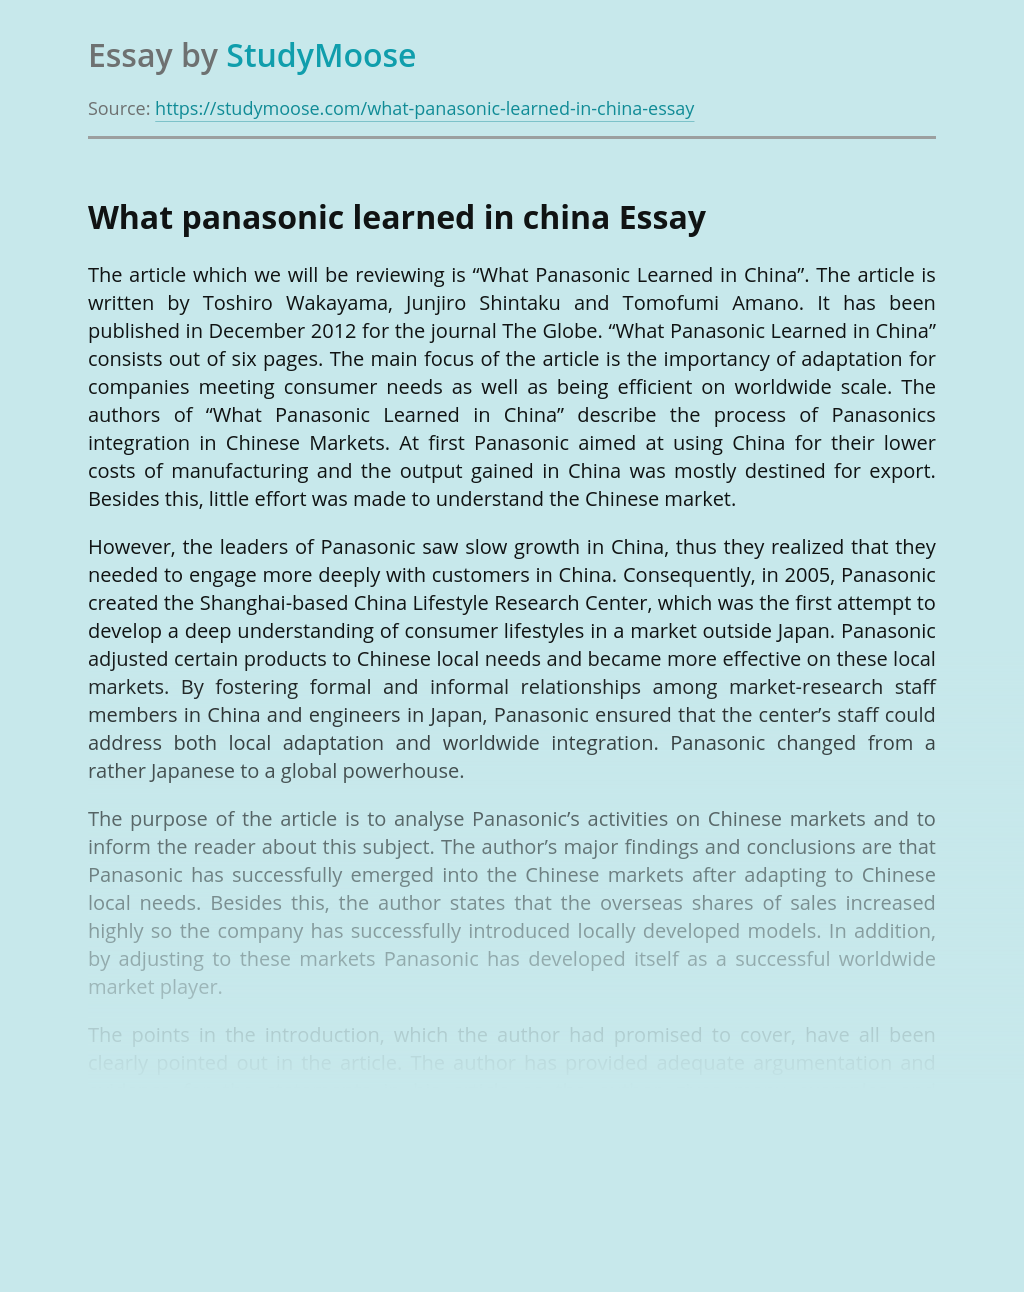 What panasonic learned in china